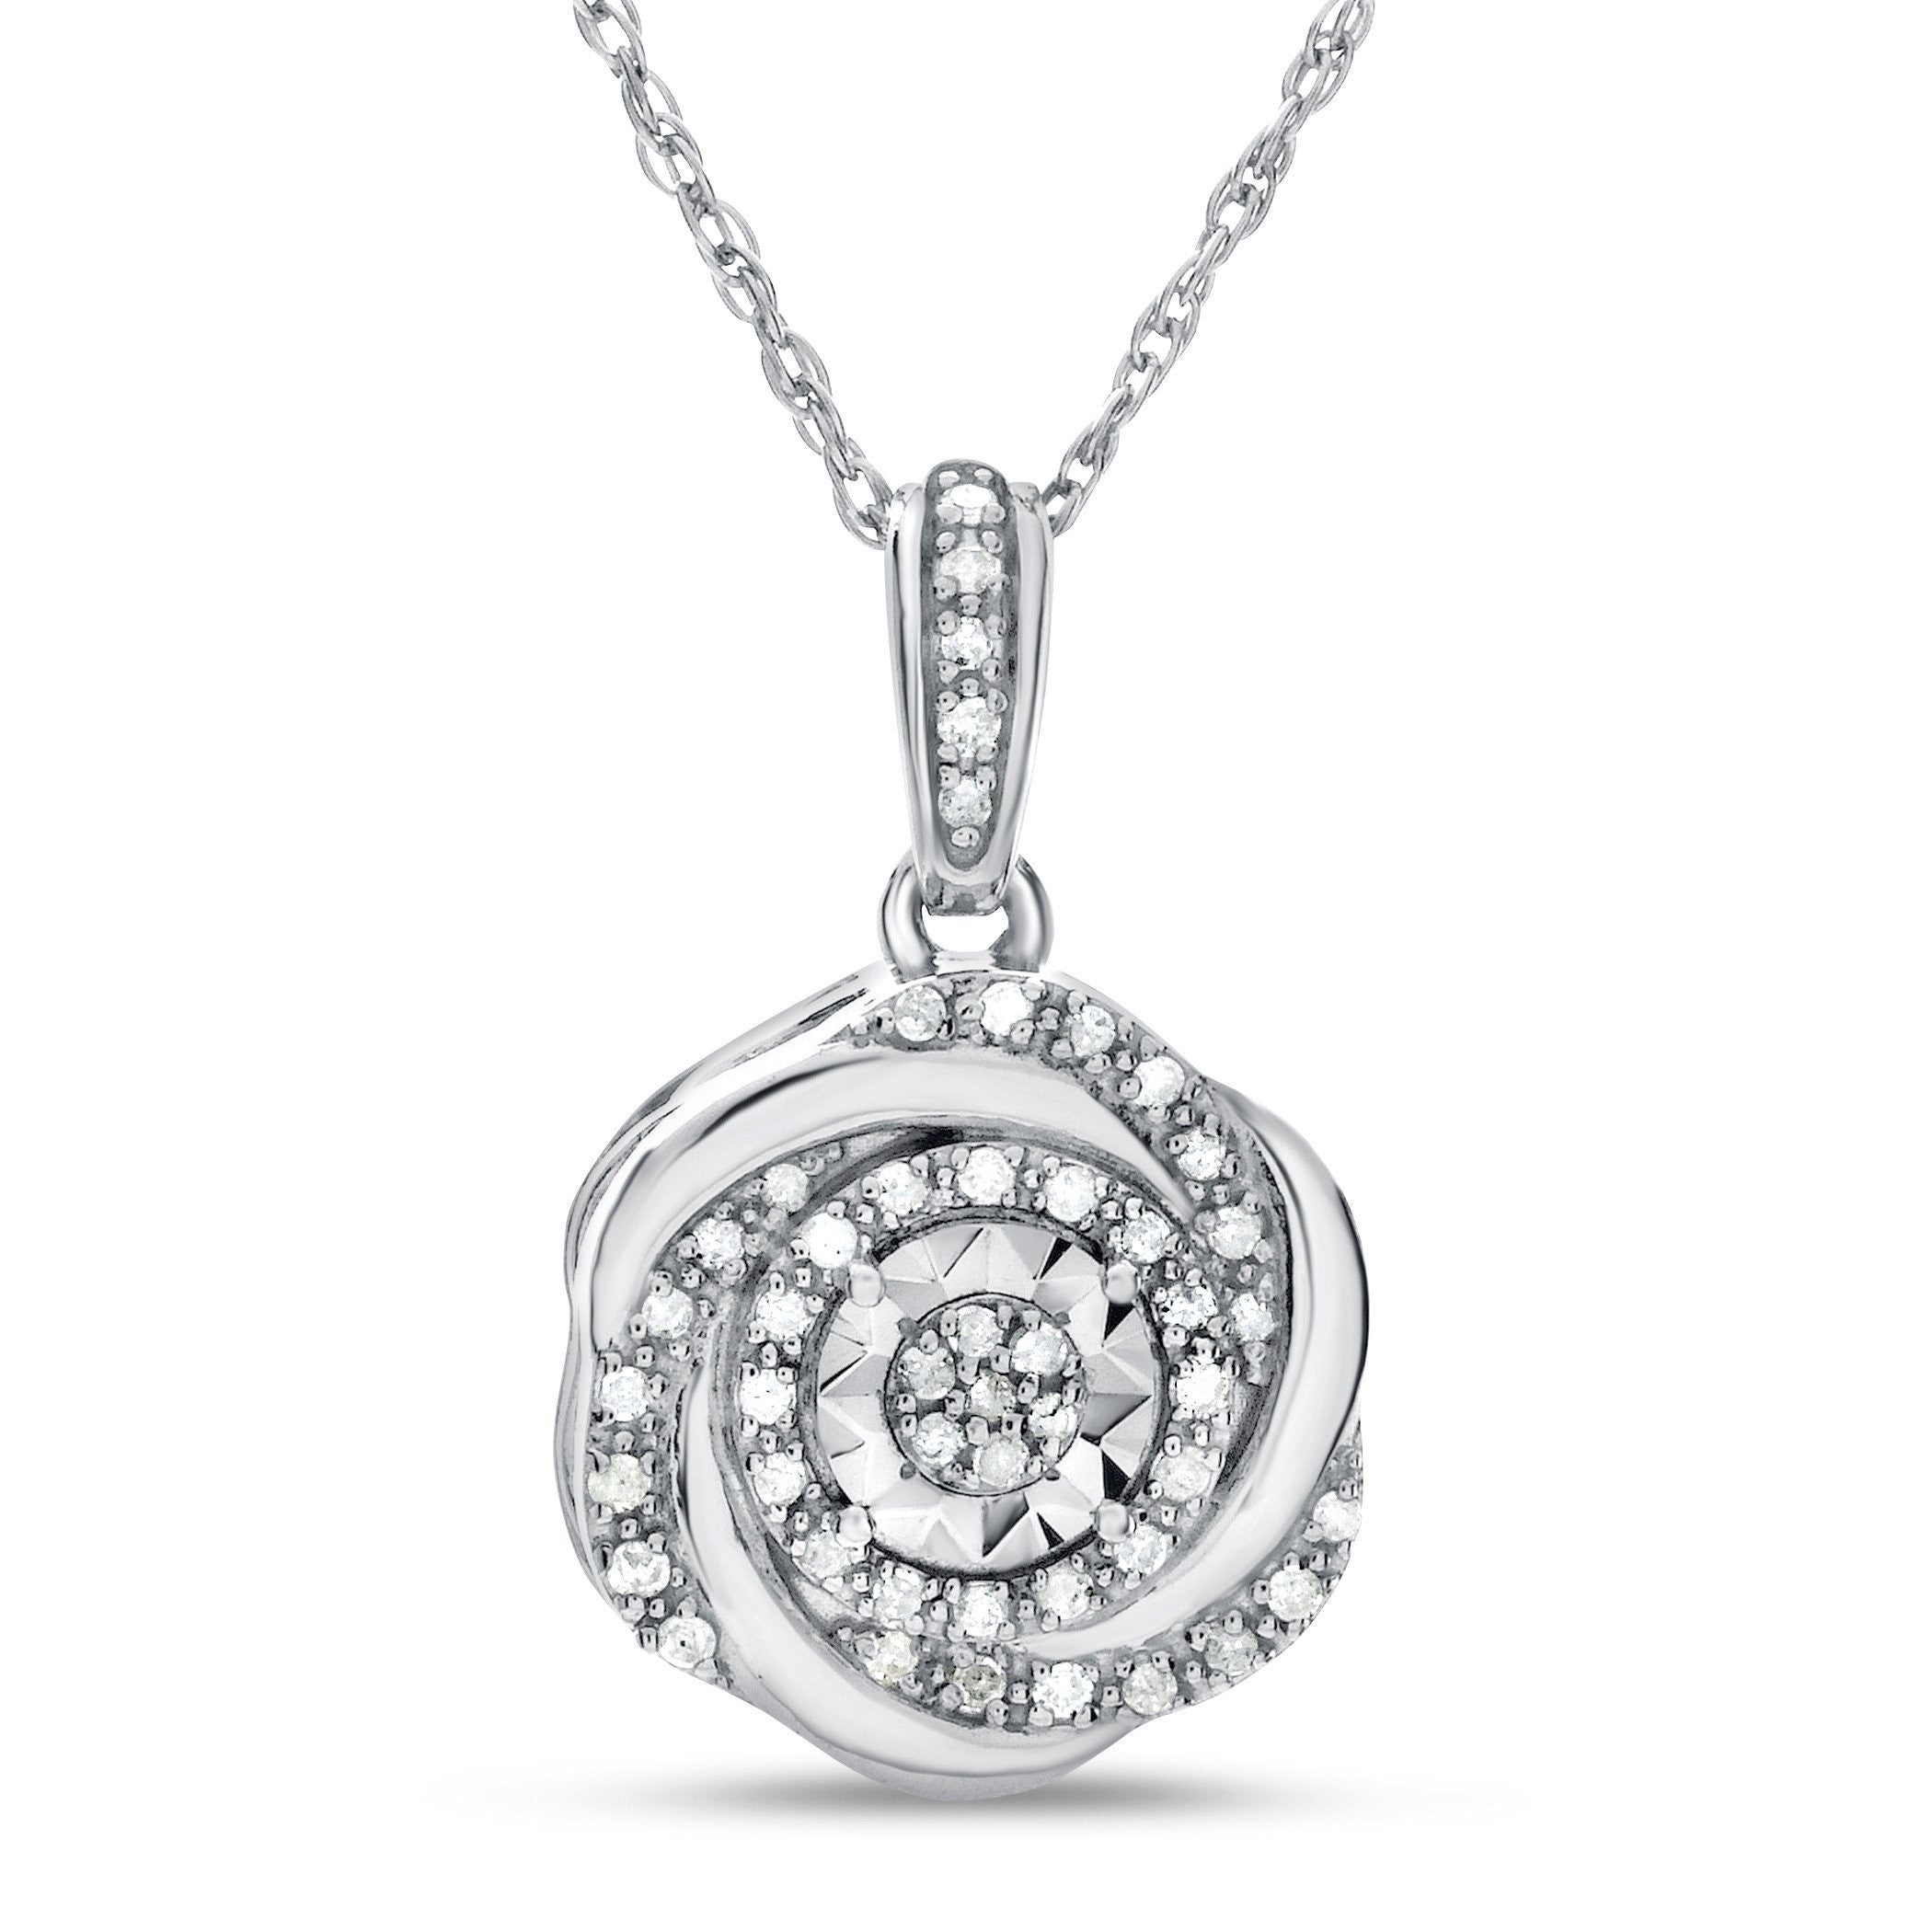 Shop dazzling diamond pendants necklaces at netaya 110 carat diamond flower pendant in sterling silver with chain aloadofball